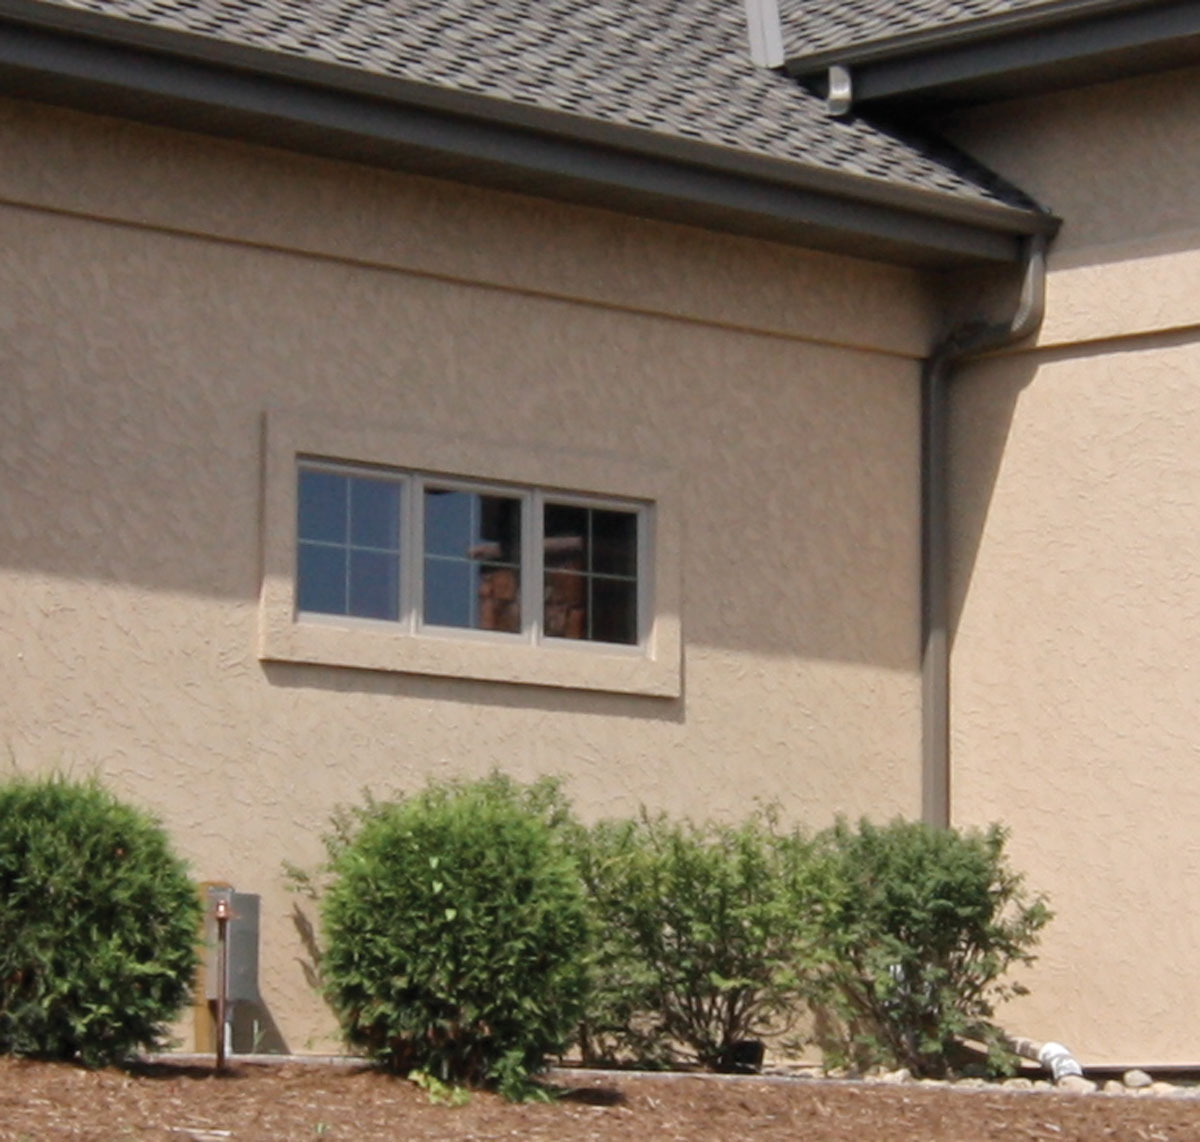 Stucco Cement Board Siding : More than just vinyl the pros and cons of common siding